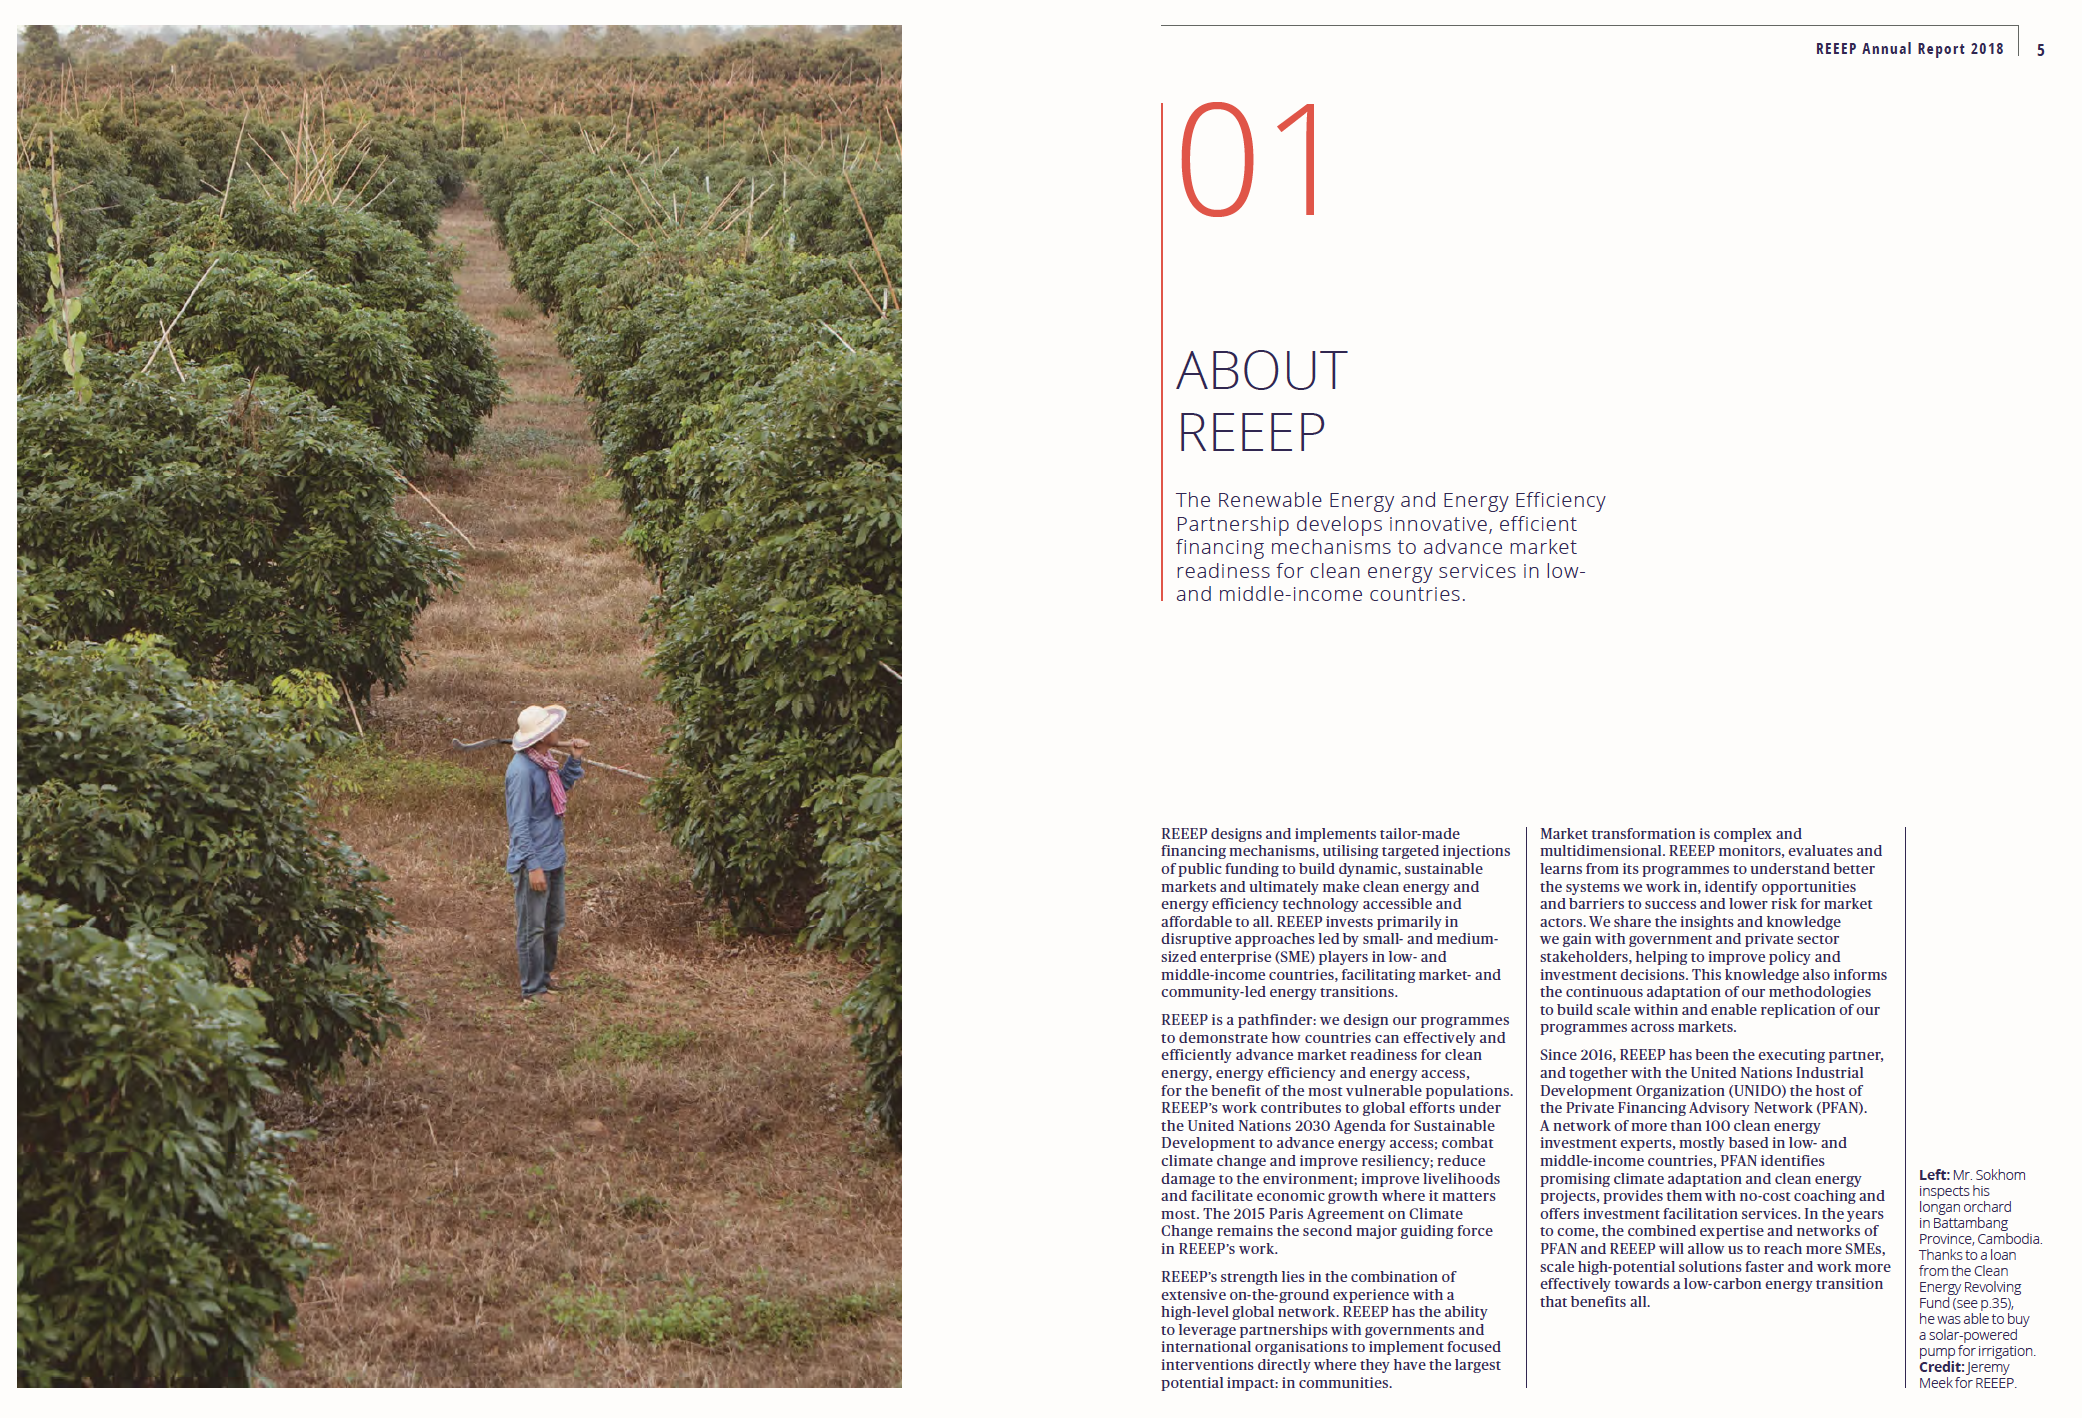 Annual Report for REEEP